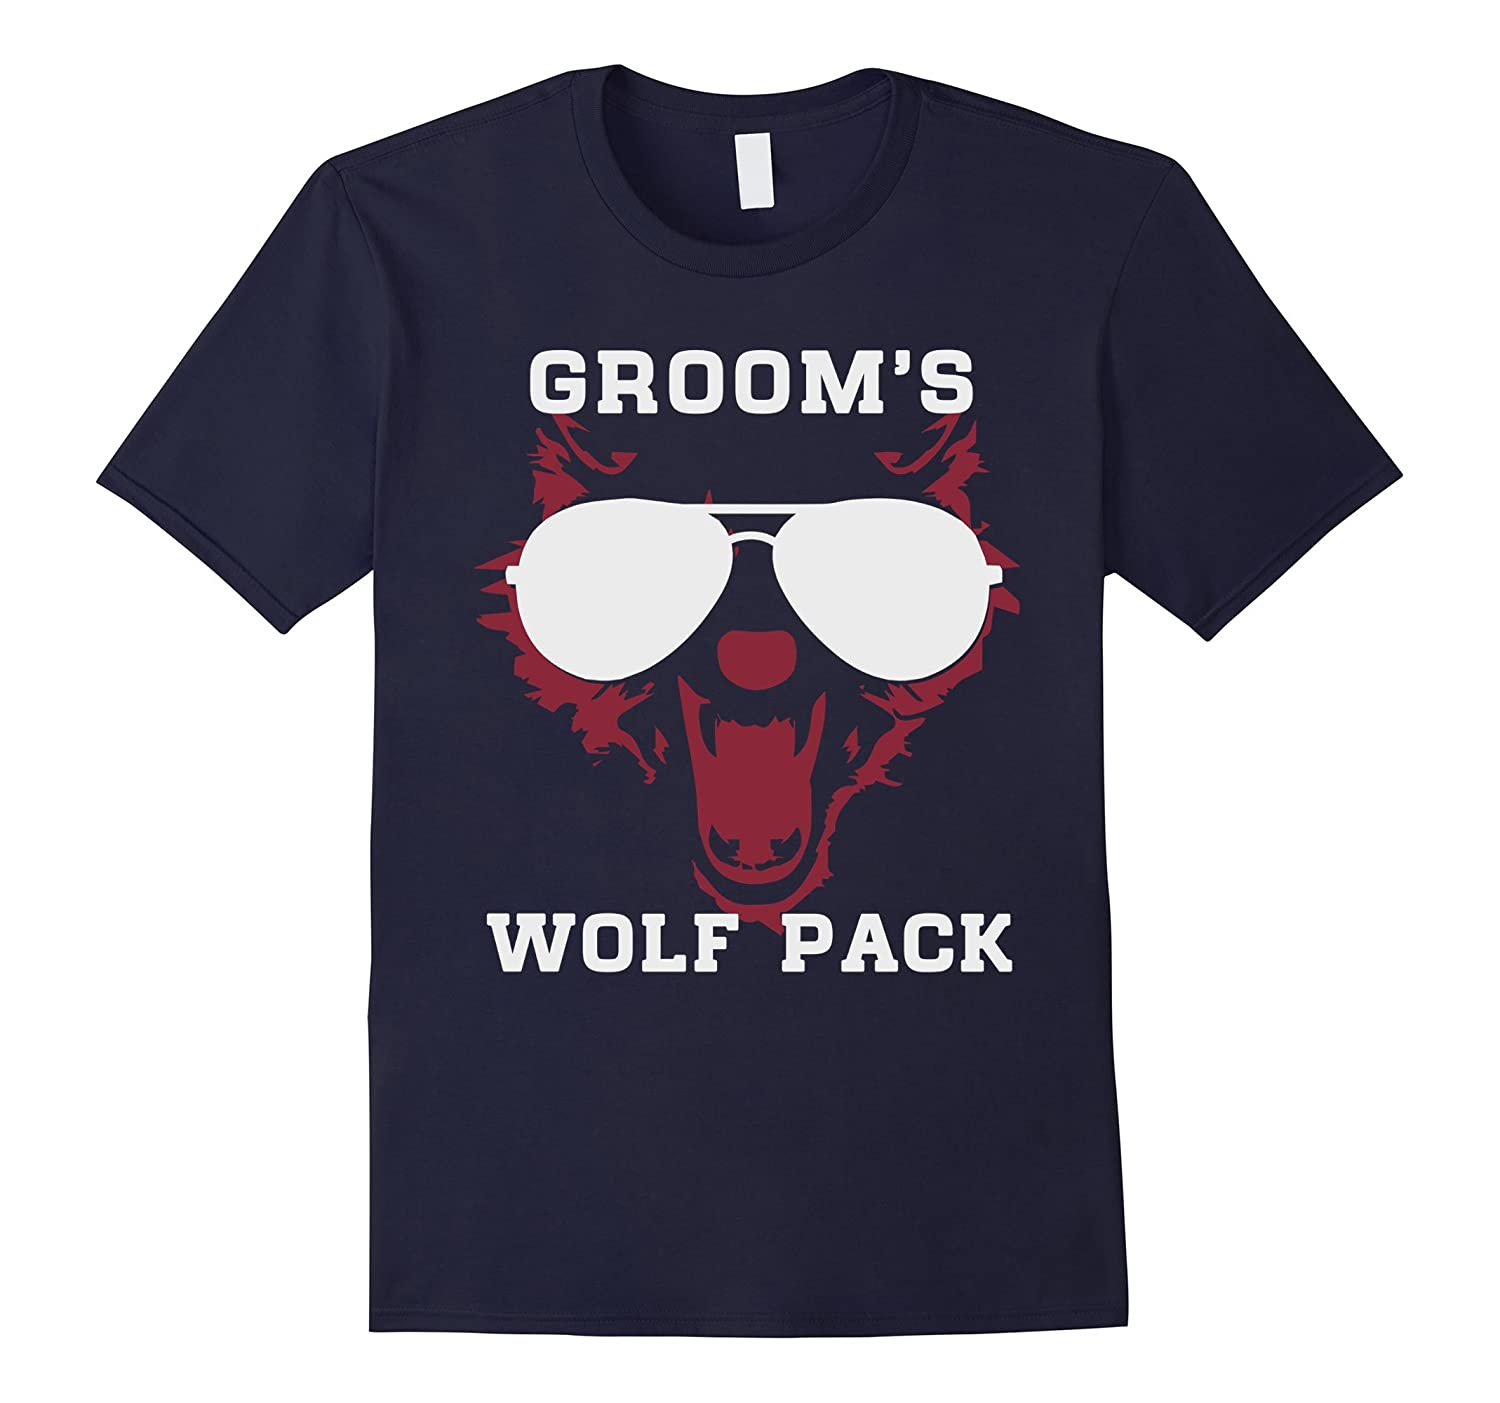 Grooms wolf pack wild bachelor party gift t-shirts for men-TD